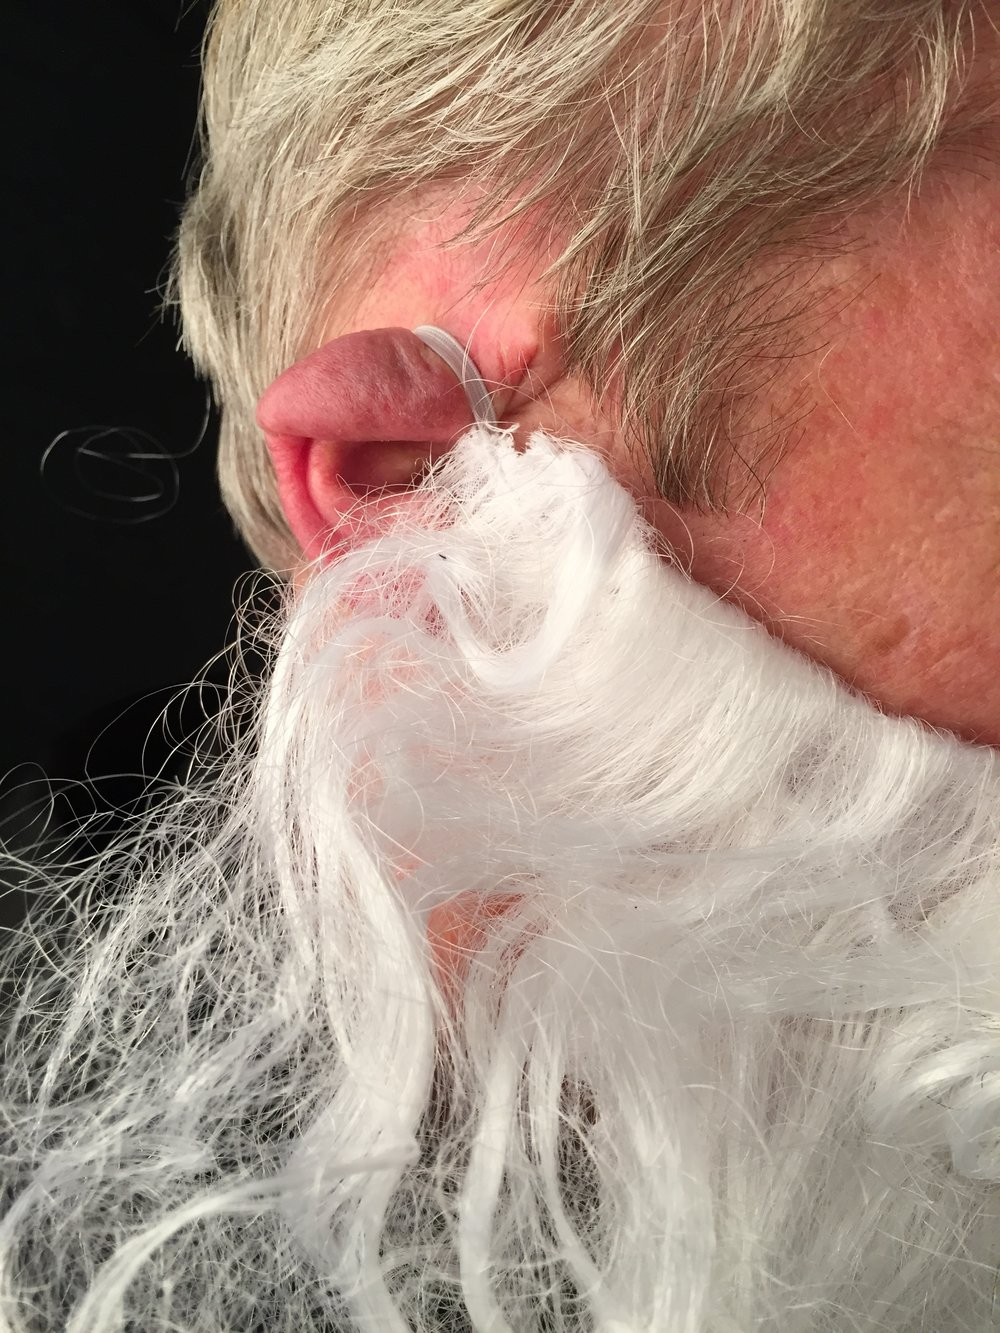 The dangers of wearing a false beard can be extreme...